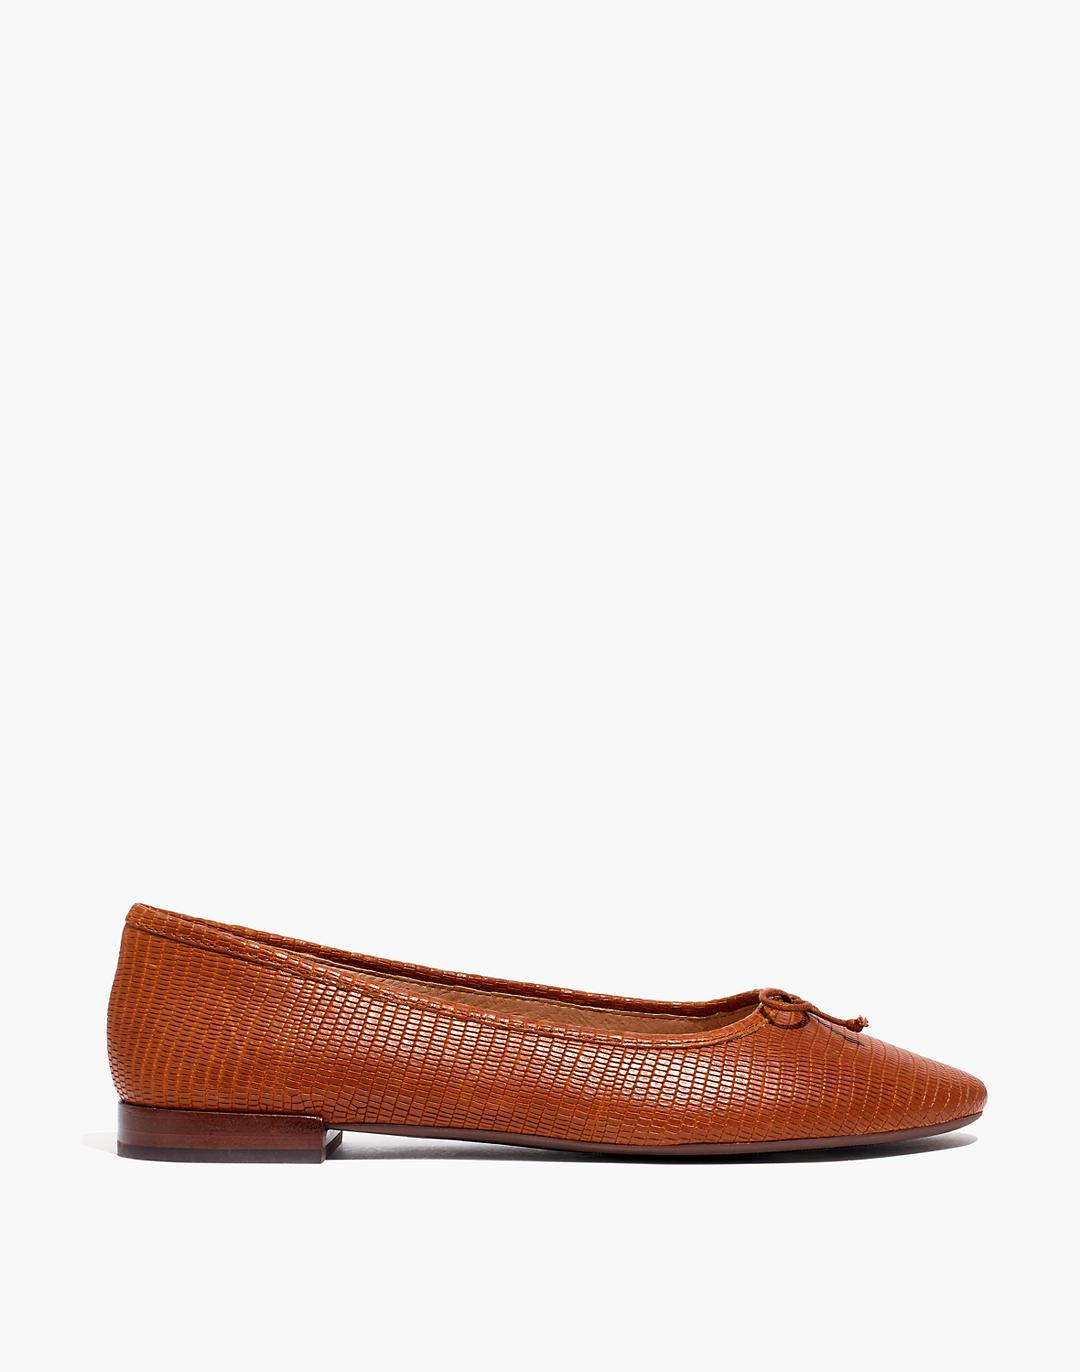 The Adelle Ballet Flat in Lizard Embossed Leather 1